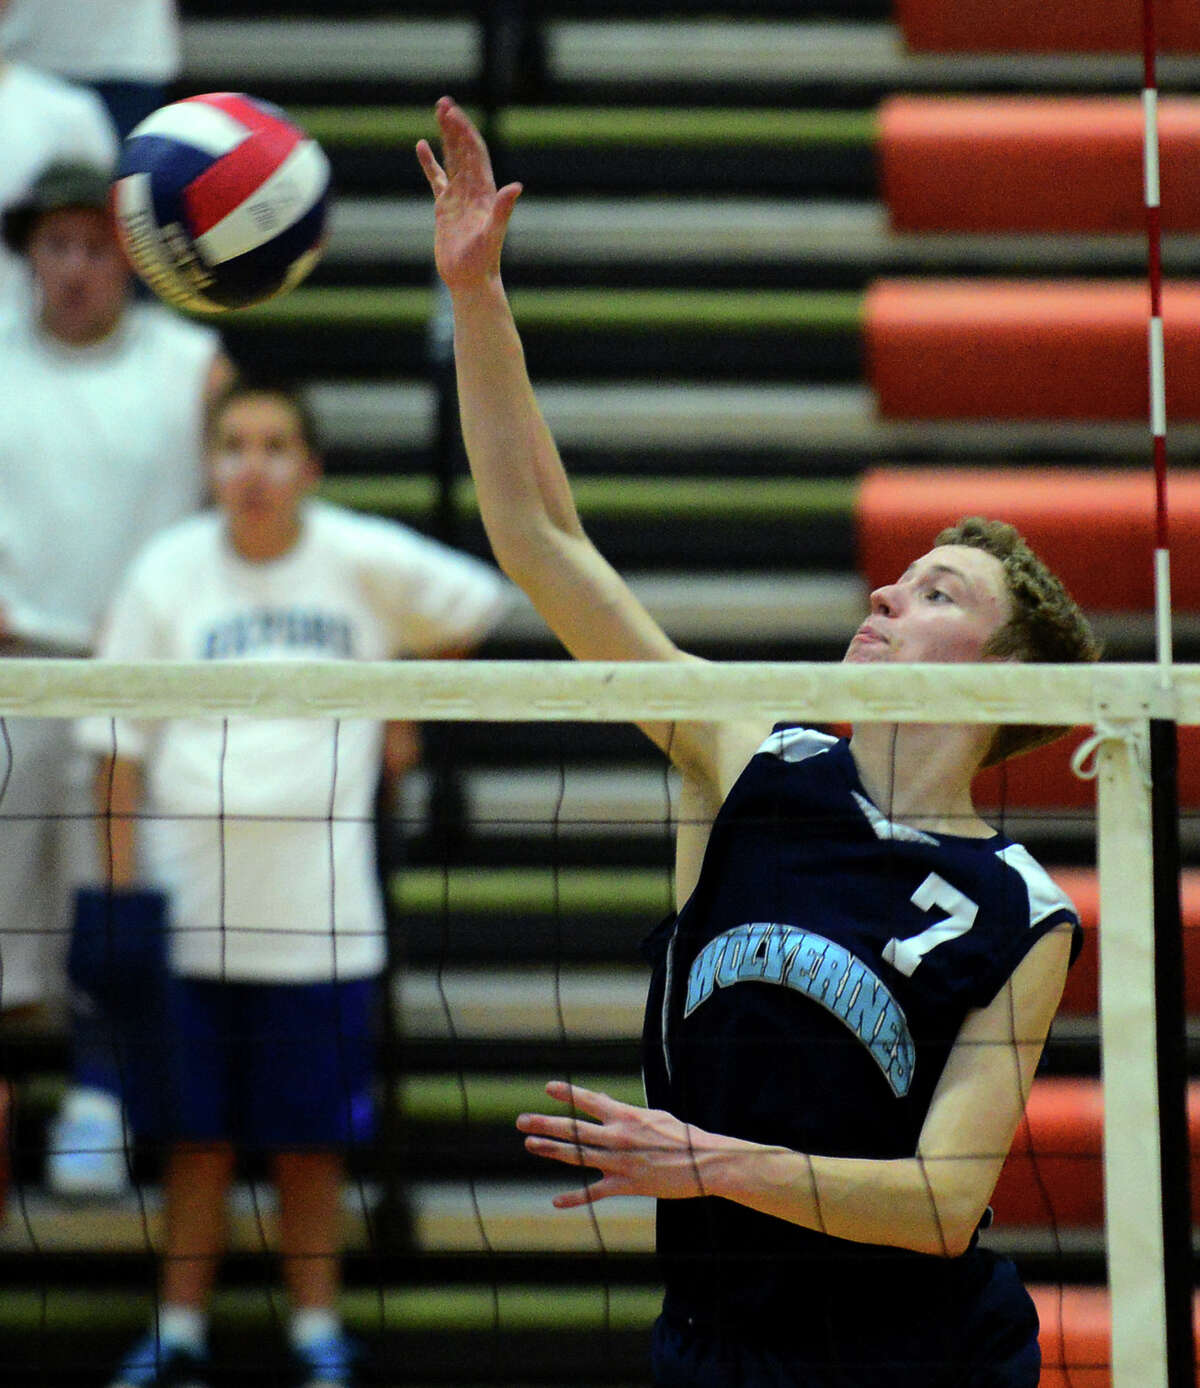 Oxford's Josh Thorne spikes the ball, during Class M Volleybal Championship action against Newington in Shelton, Conn. on Friday June 13, 2014.